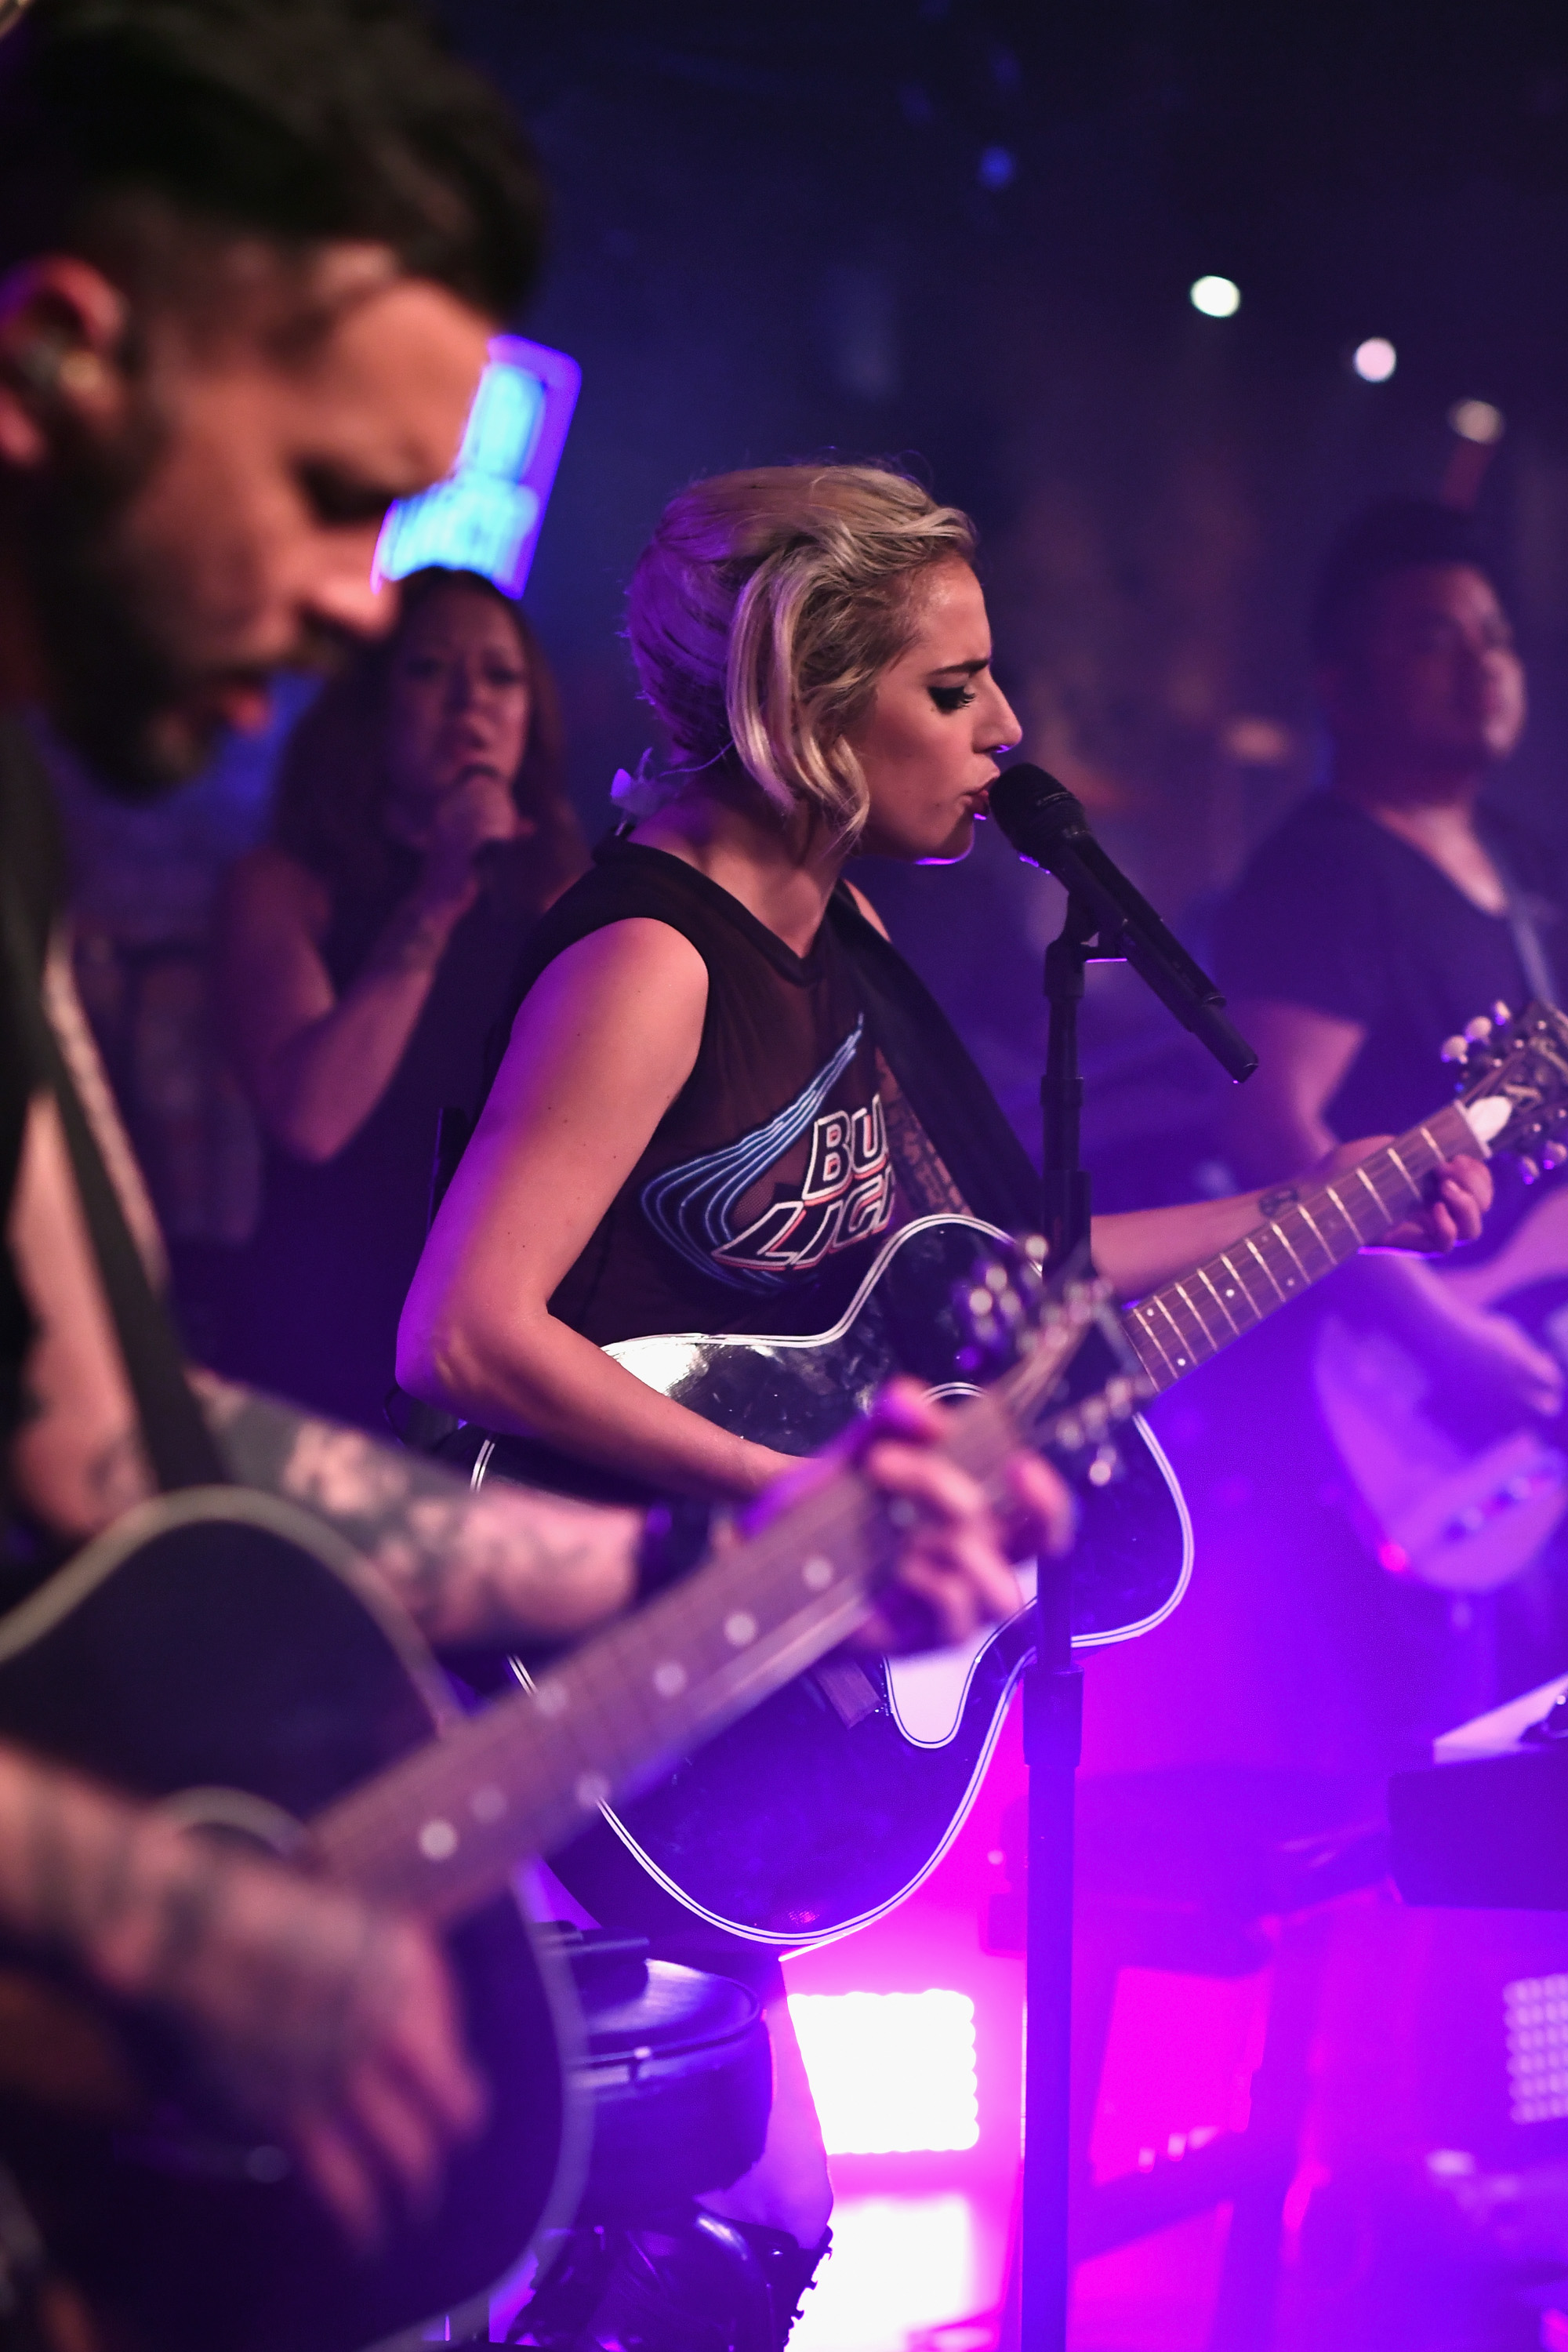 Lady Gaga's Bar Tour: NYC | Access Online